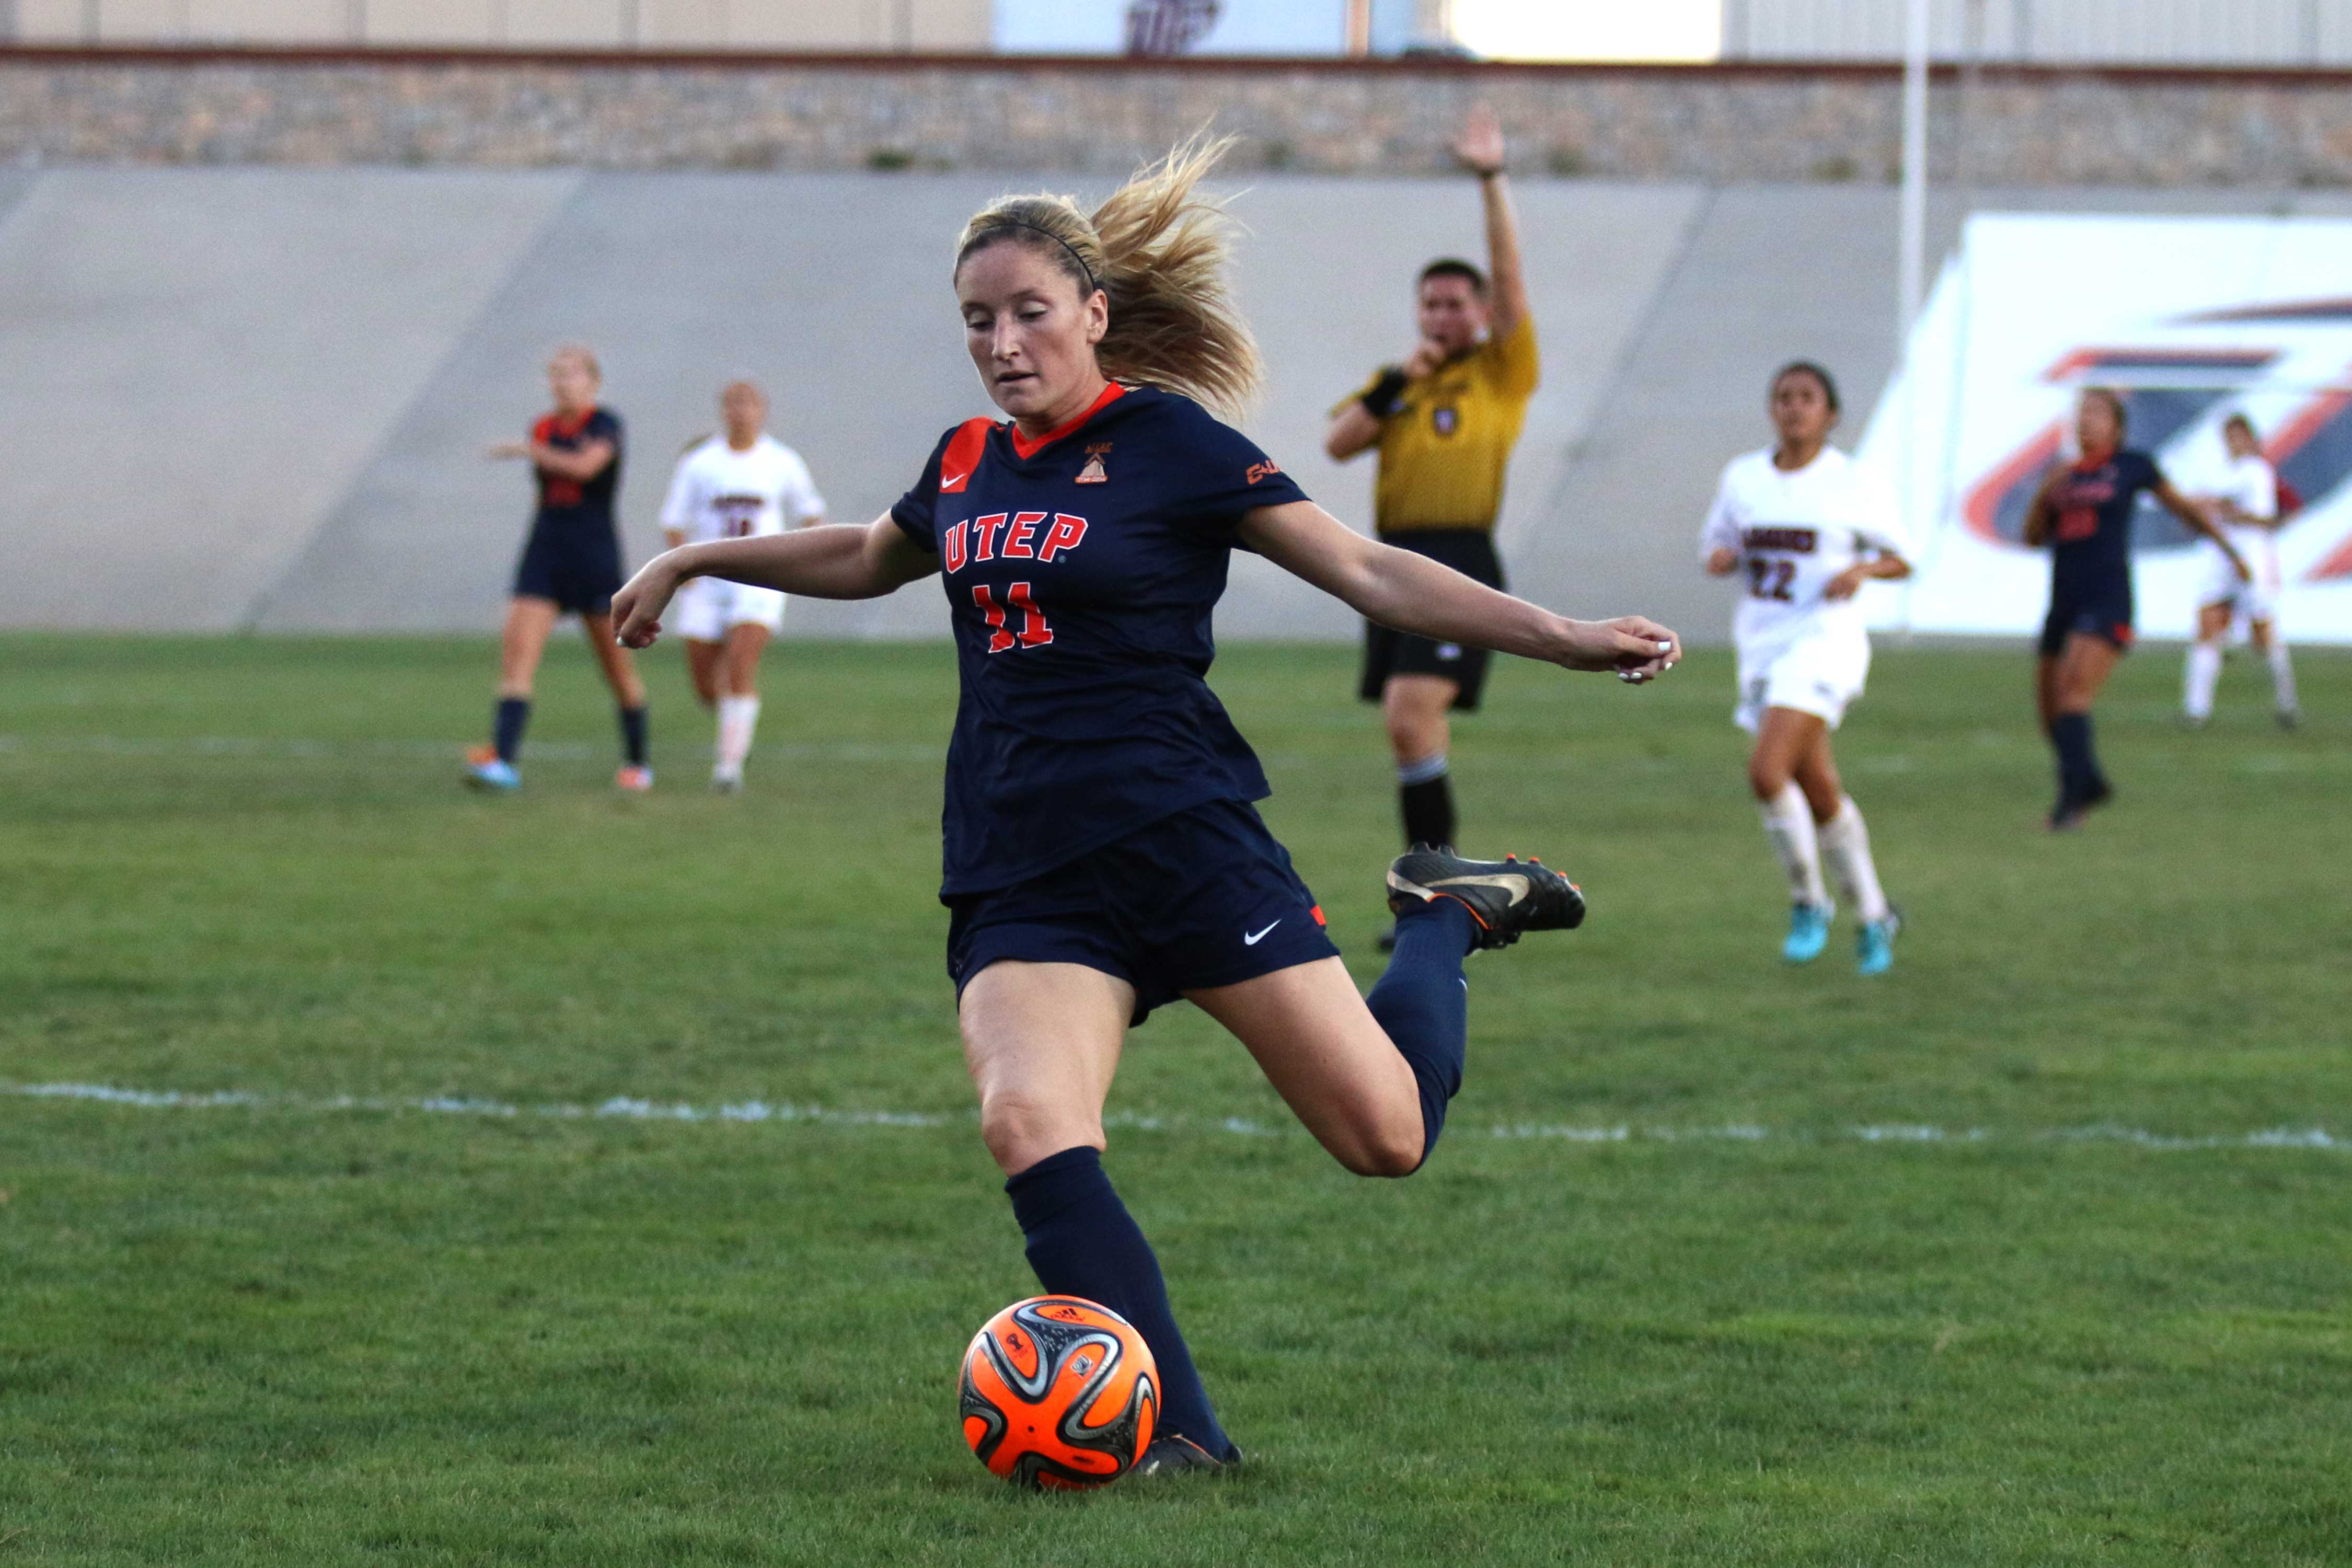 Midfielder Angela Cutaia is having a breakout season for the Miners in her junior year, leading the team in goals and points.